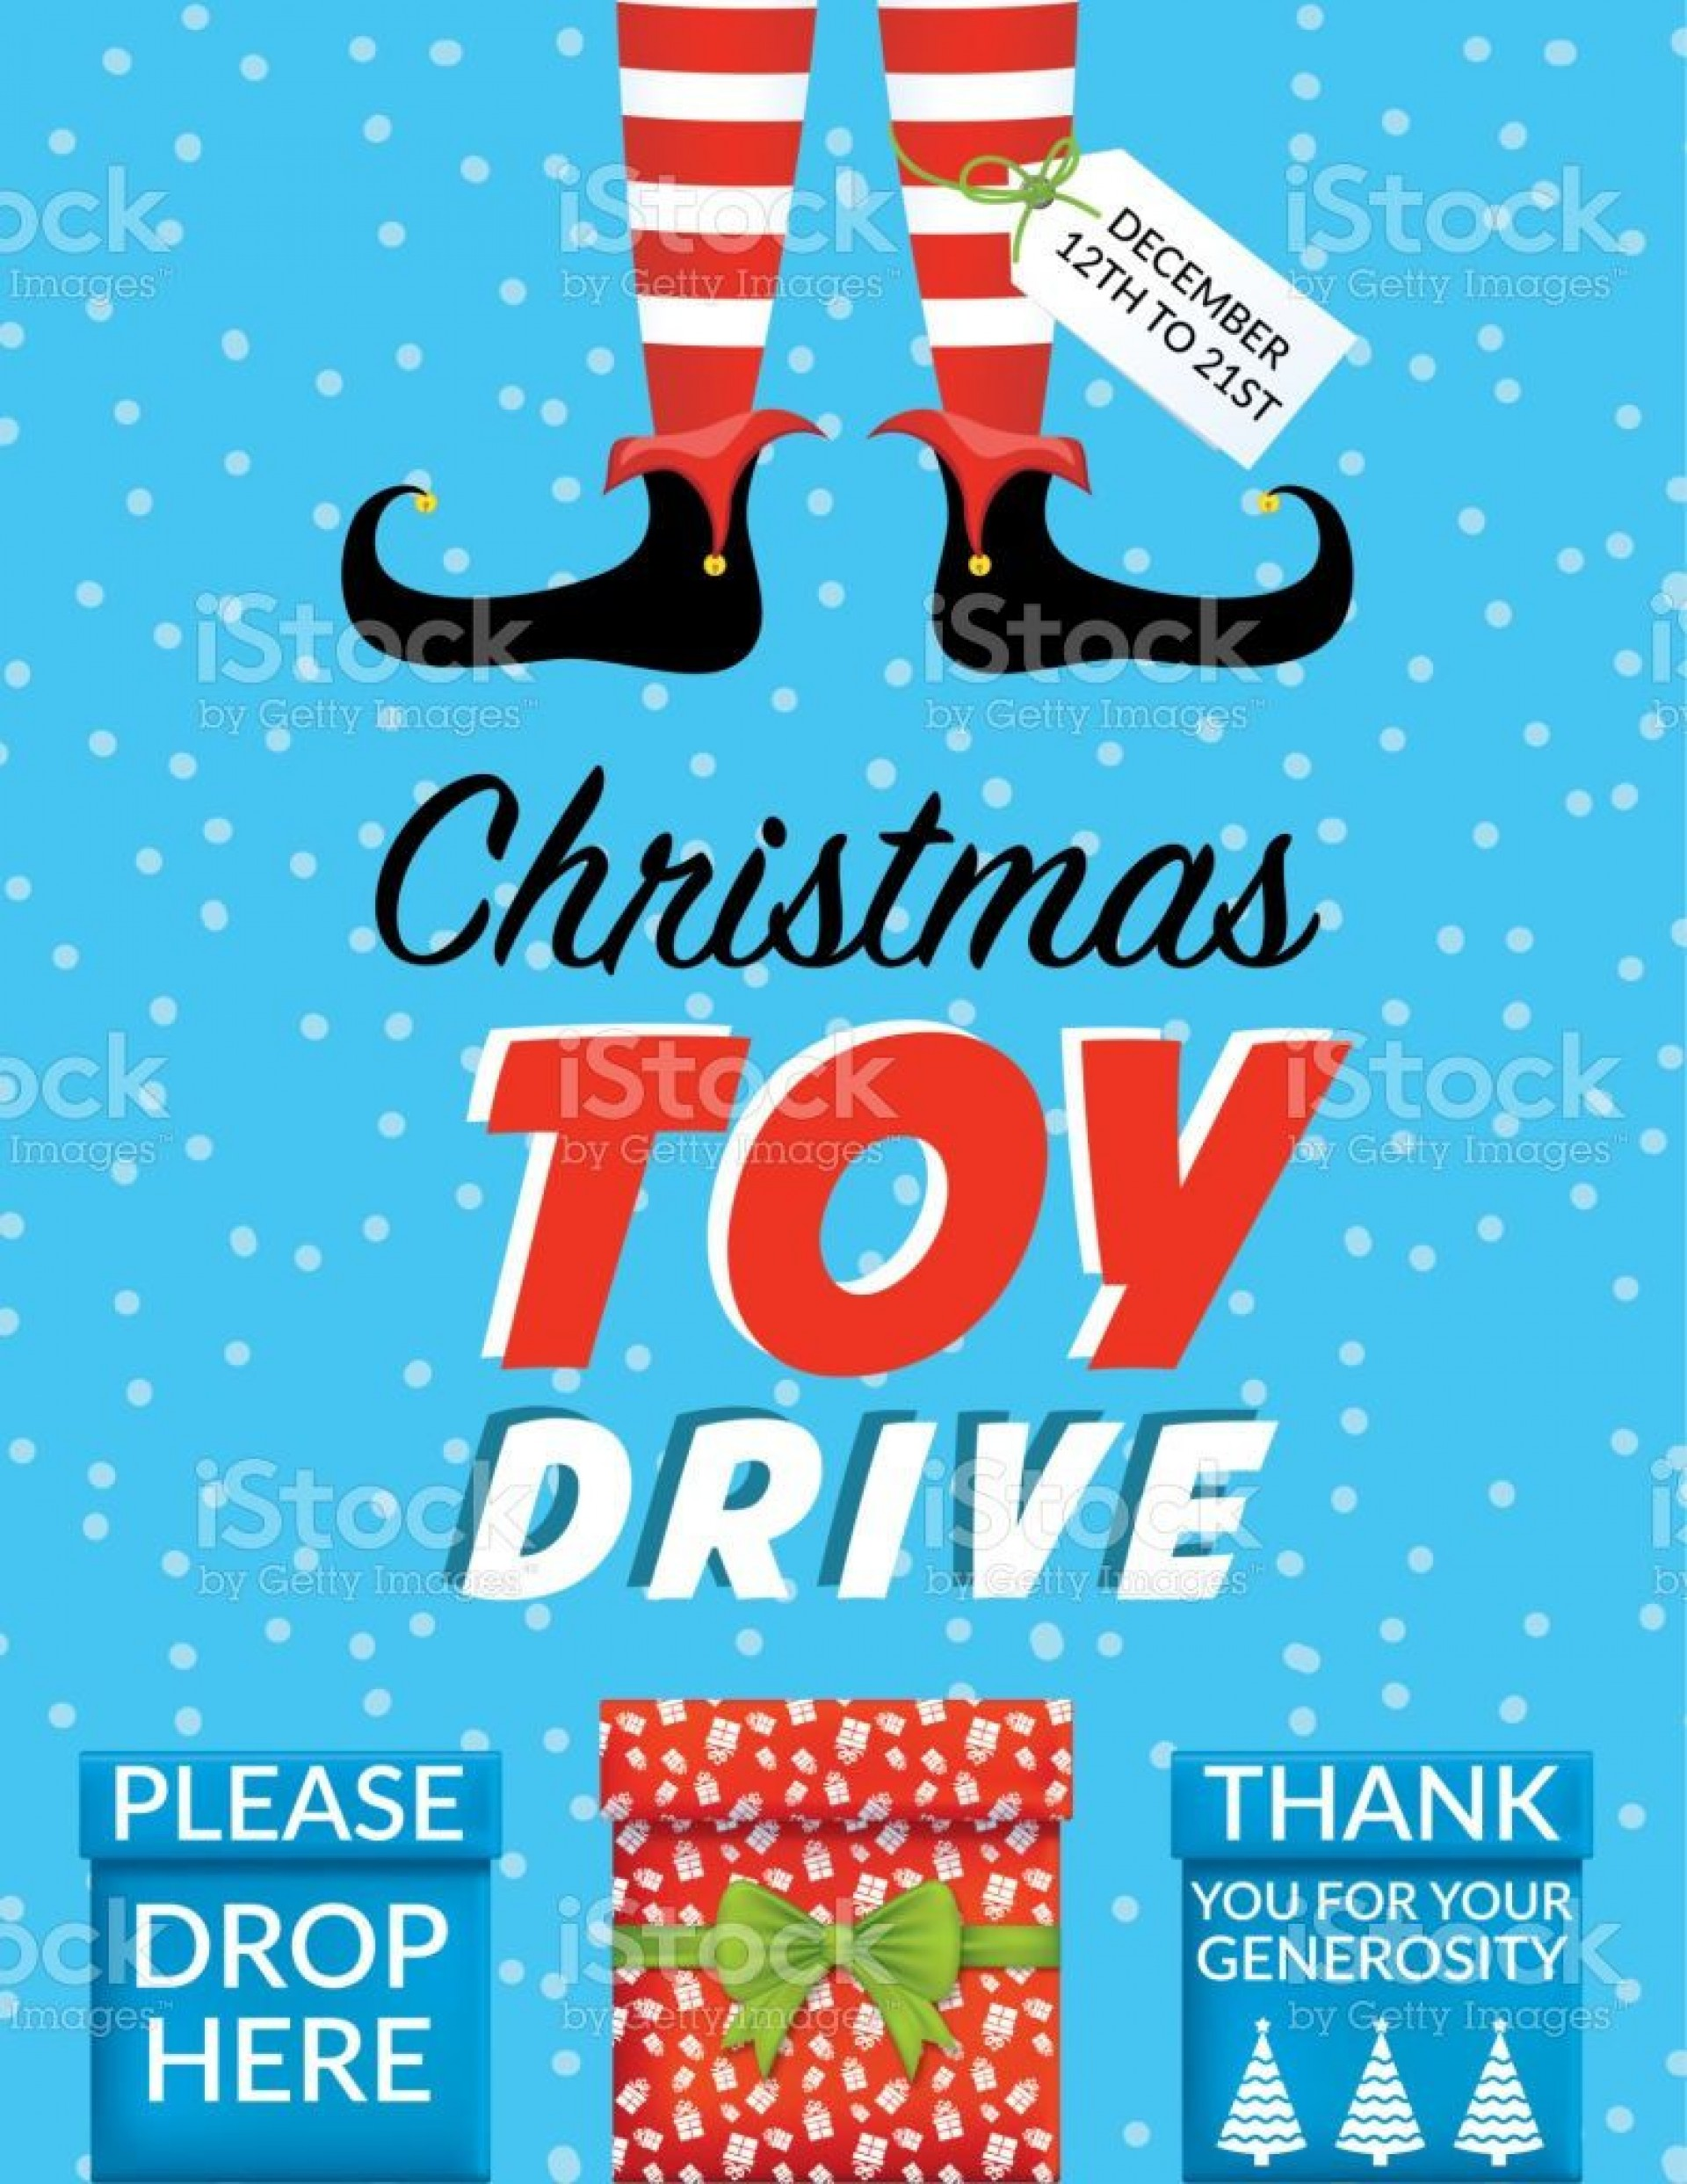 008 Imposing Toy Drive Flyer Template Free Inspiration  Download Christma1920